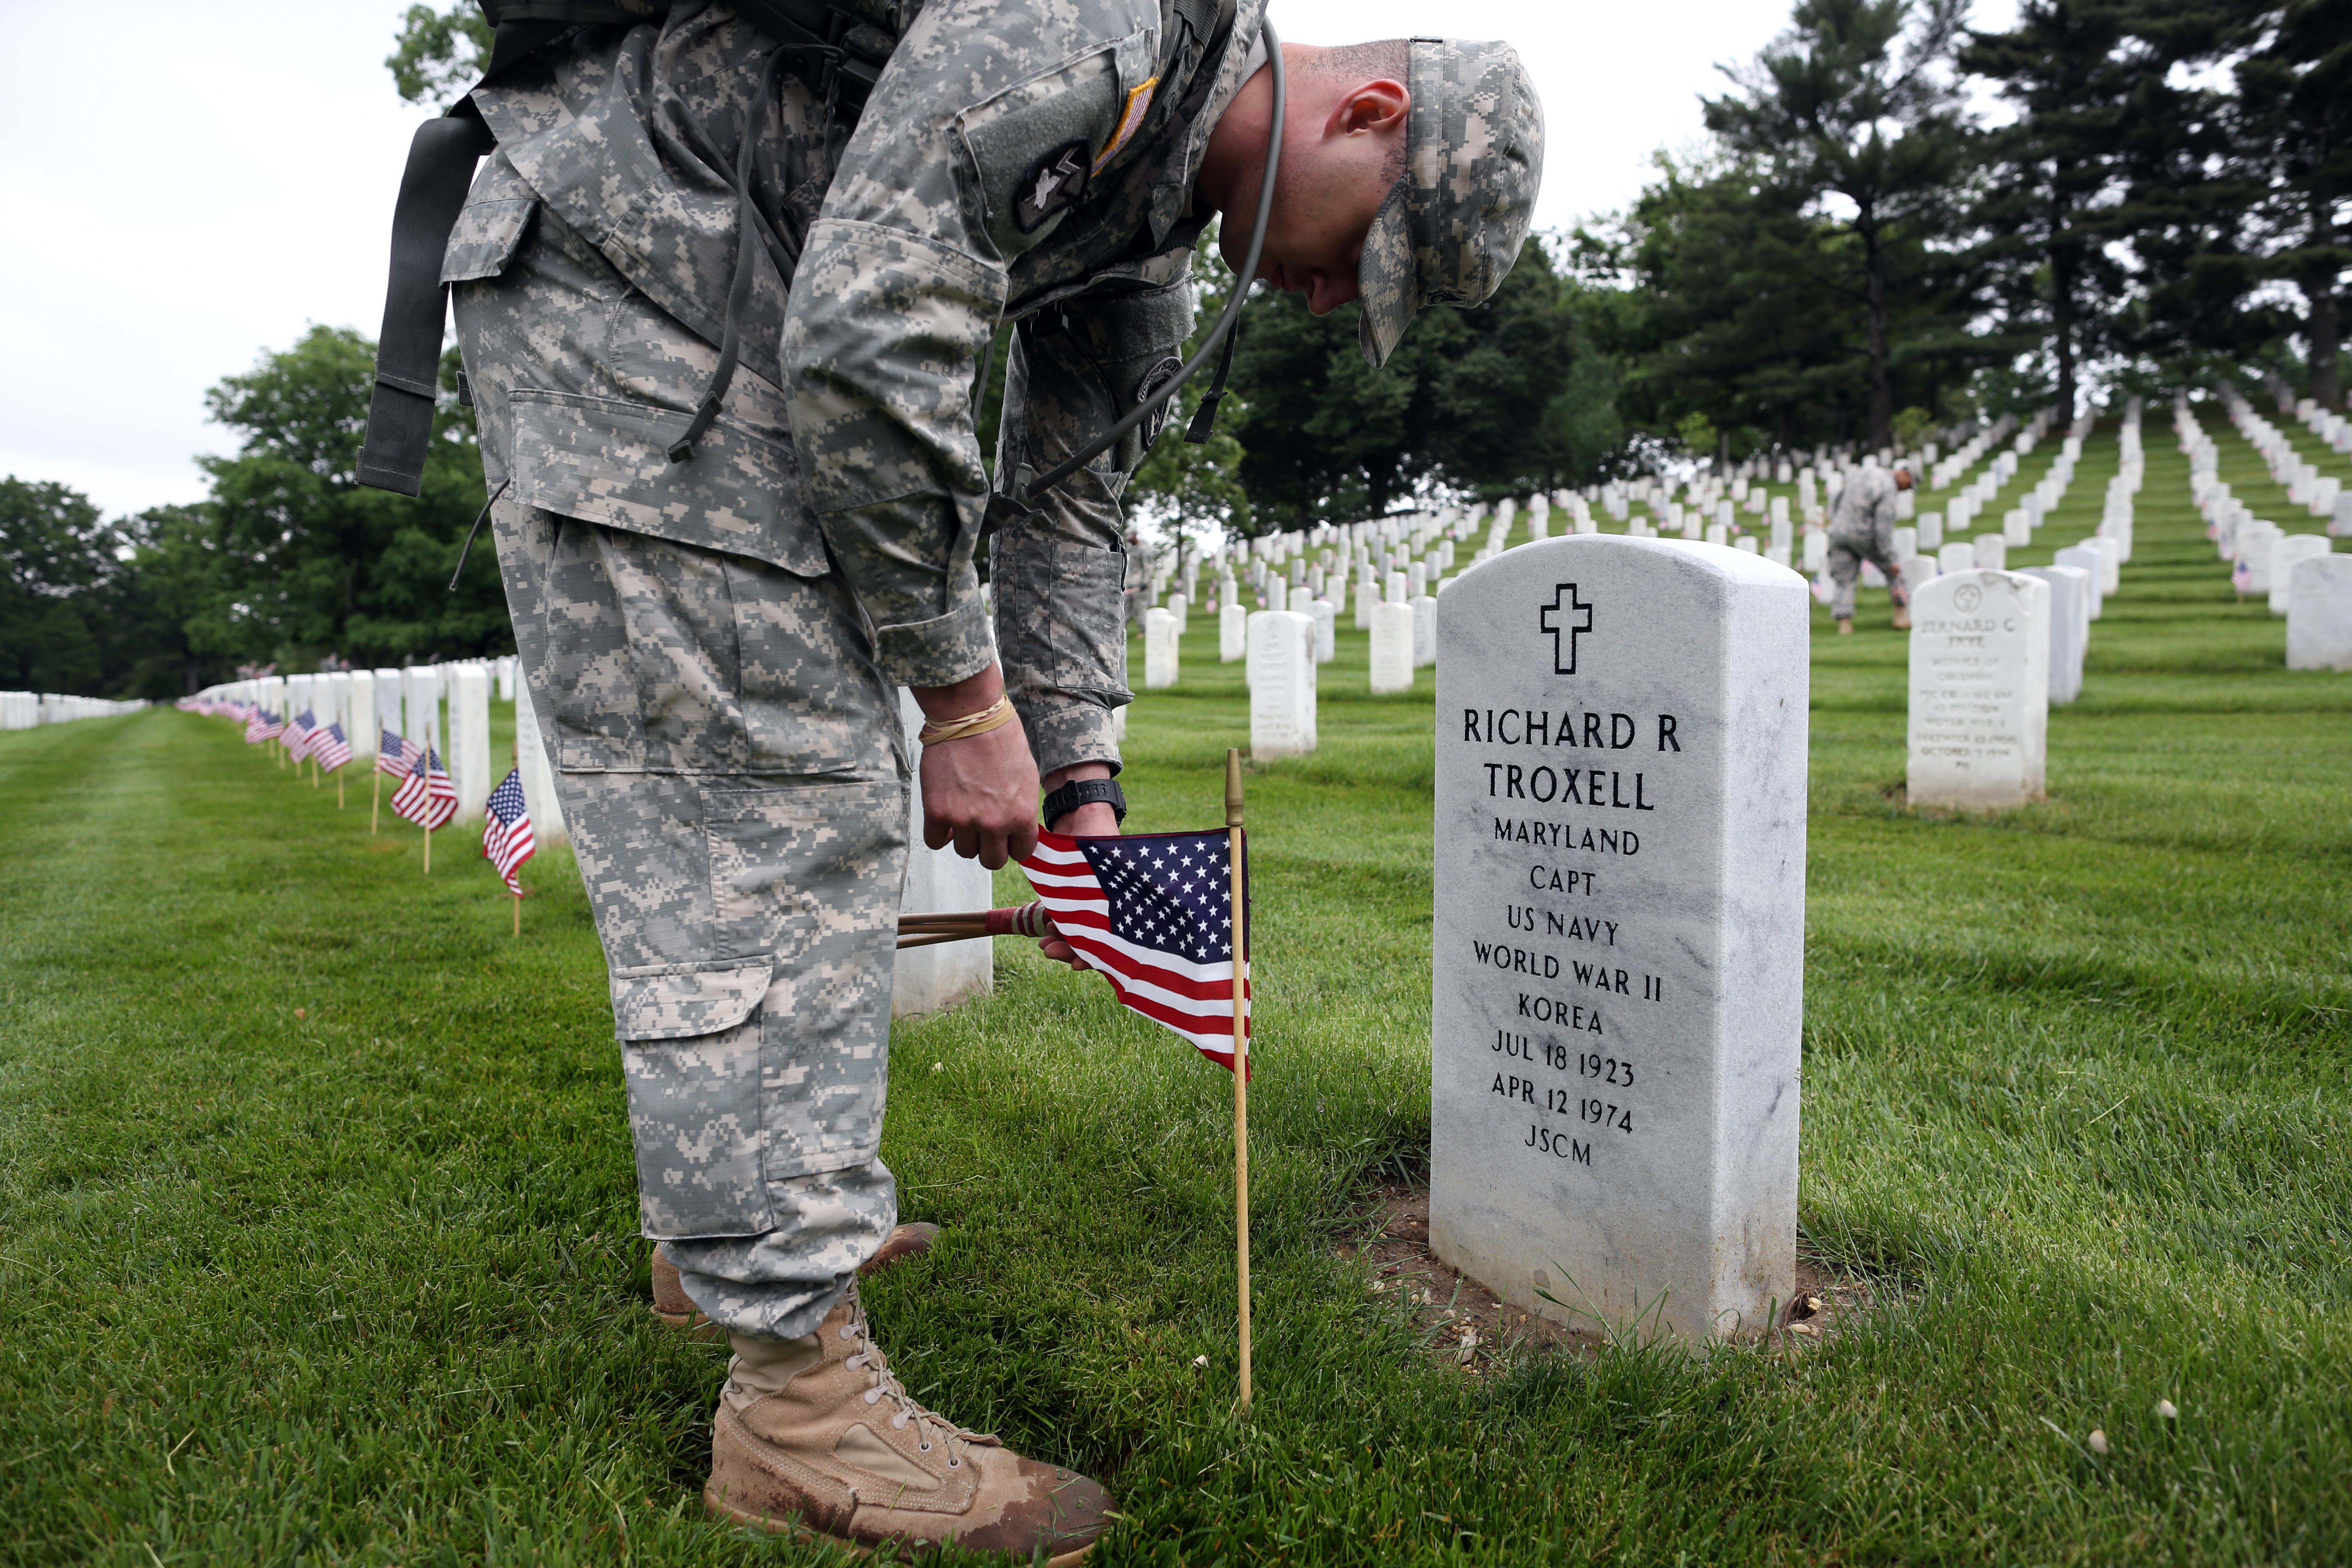 Over 1,000 members of the U.S. Infantry Regiment (The Old Guard) place 228,000 flags at headstones for Memorial Day weekend at Arlington National Cemetery in Arlington, Va. on on May 21, 2015.